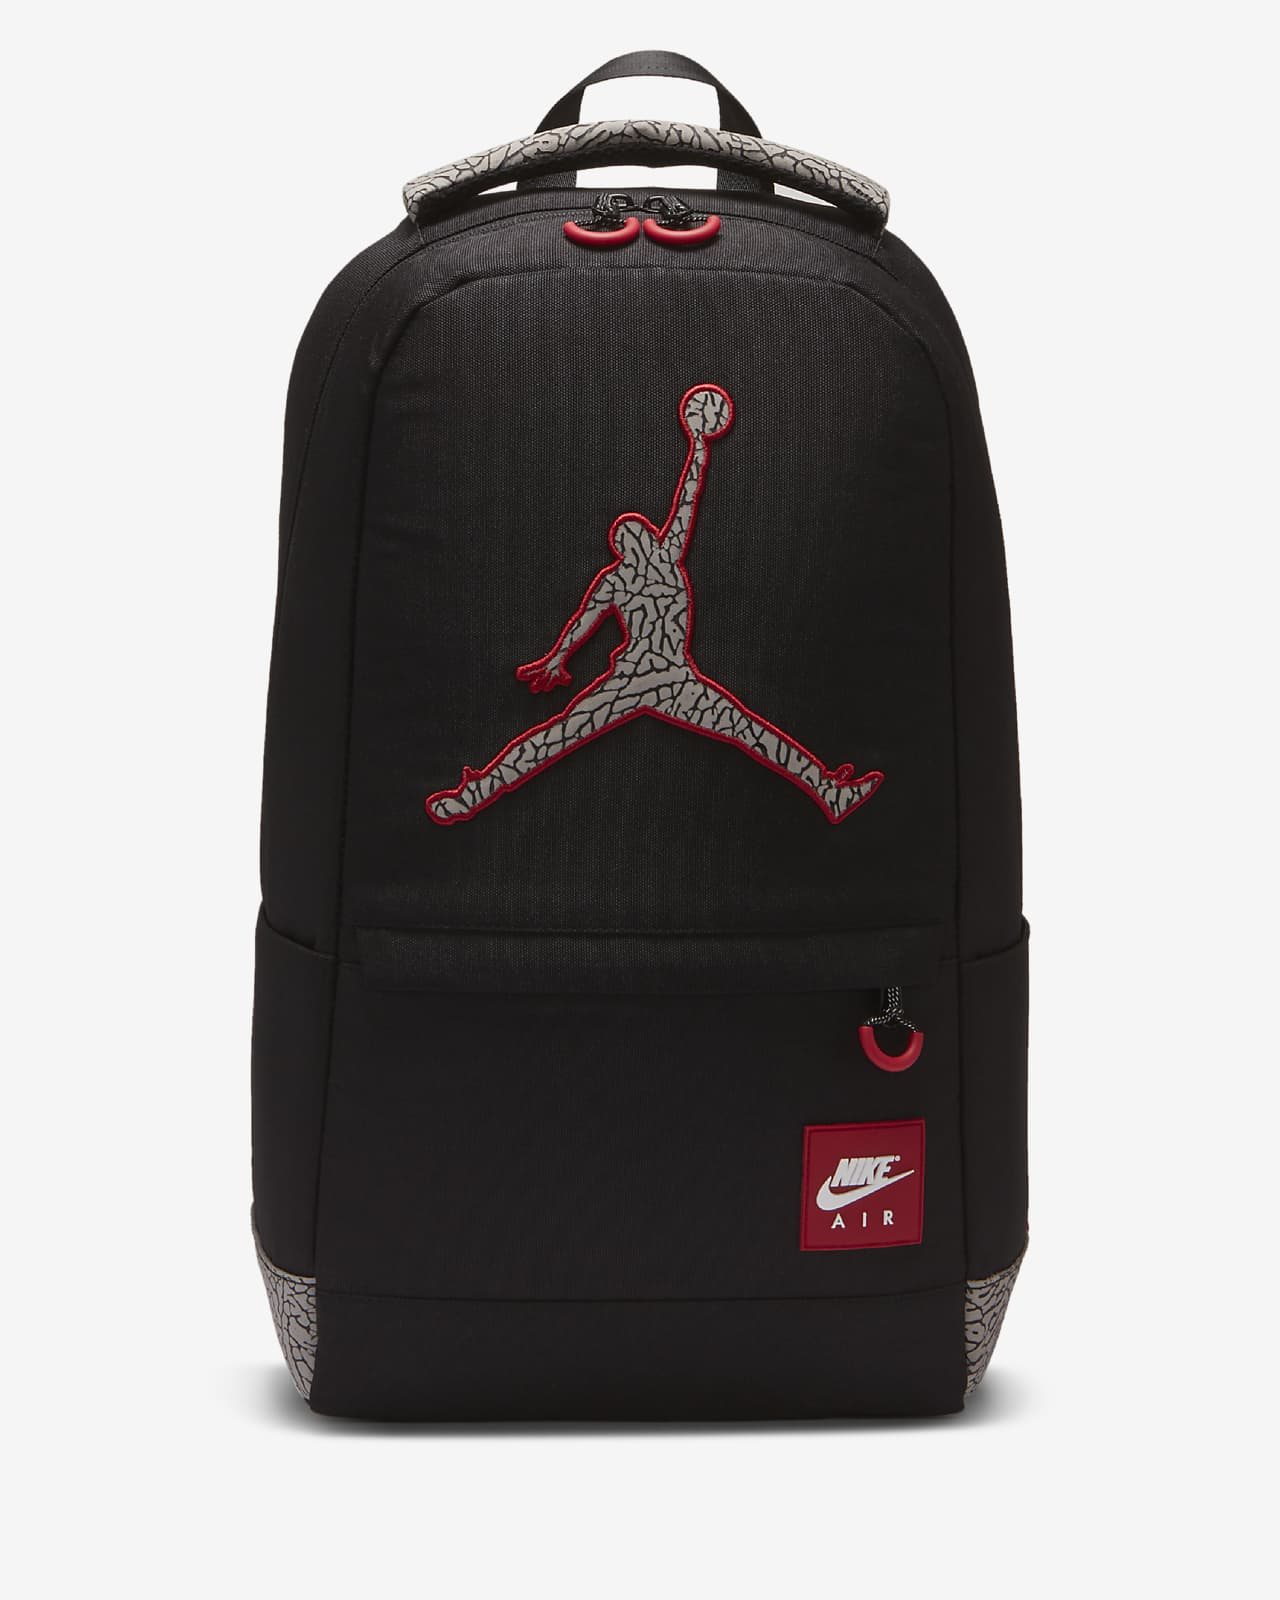 Jordan Backpack (Large)